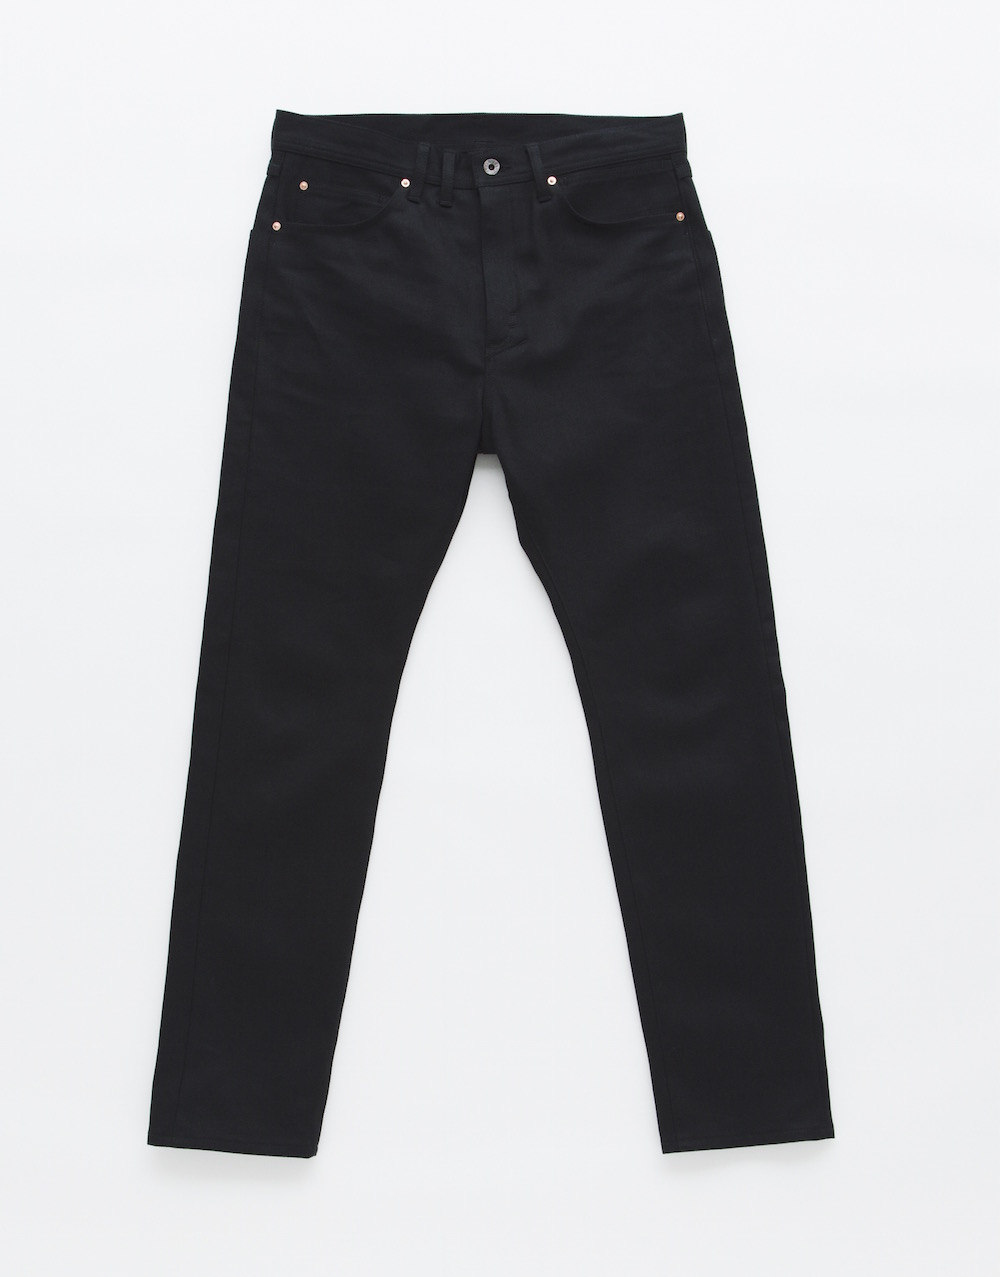 METAPHORE DROP CLOTCH DENIM PANTS